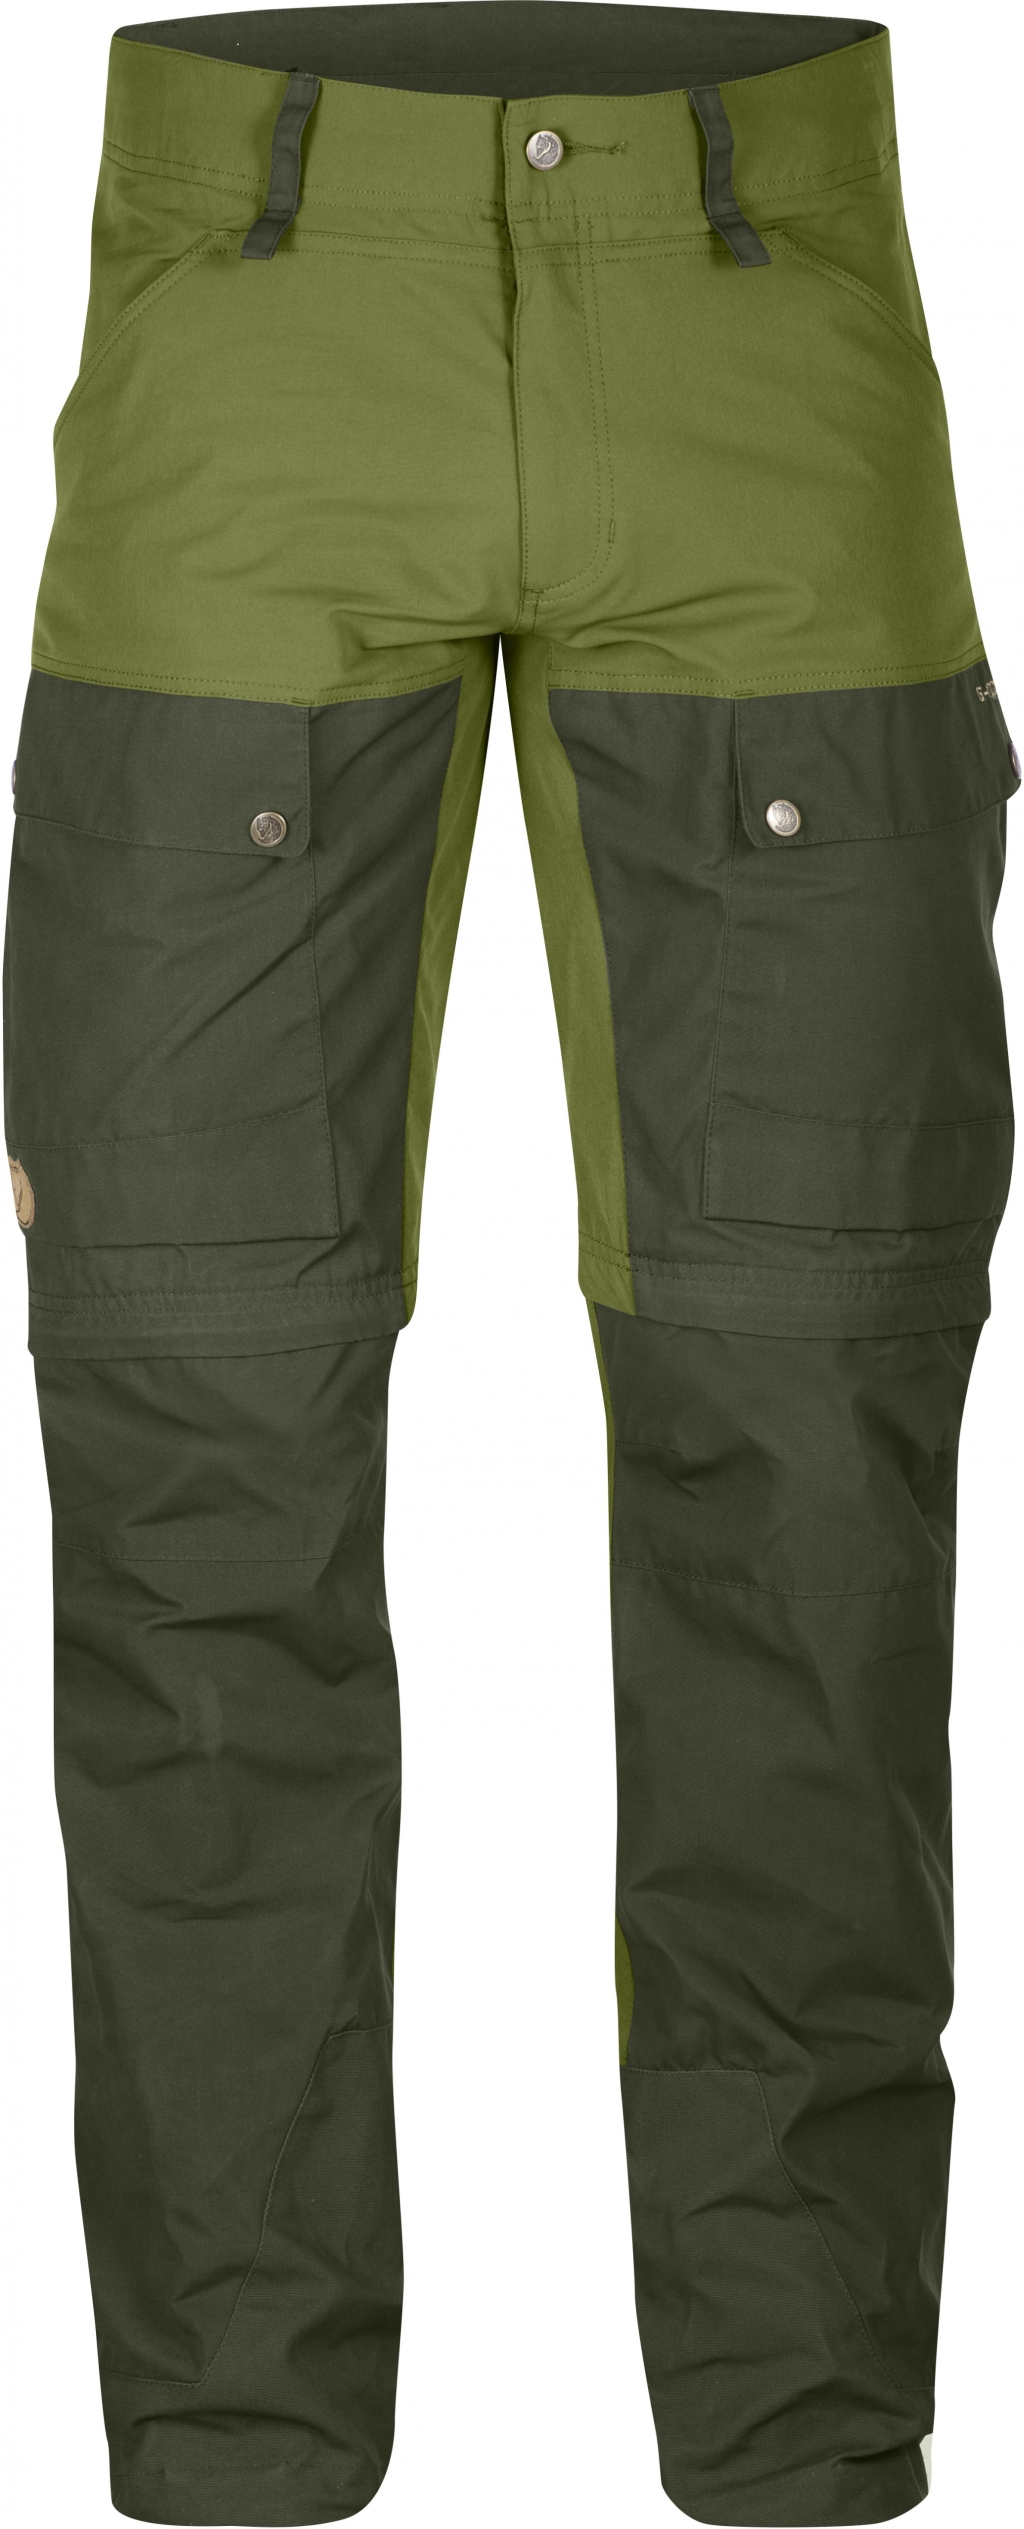 FjallRaven Keb Gaiter Trousers Long Avocado-30